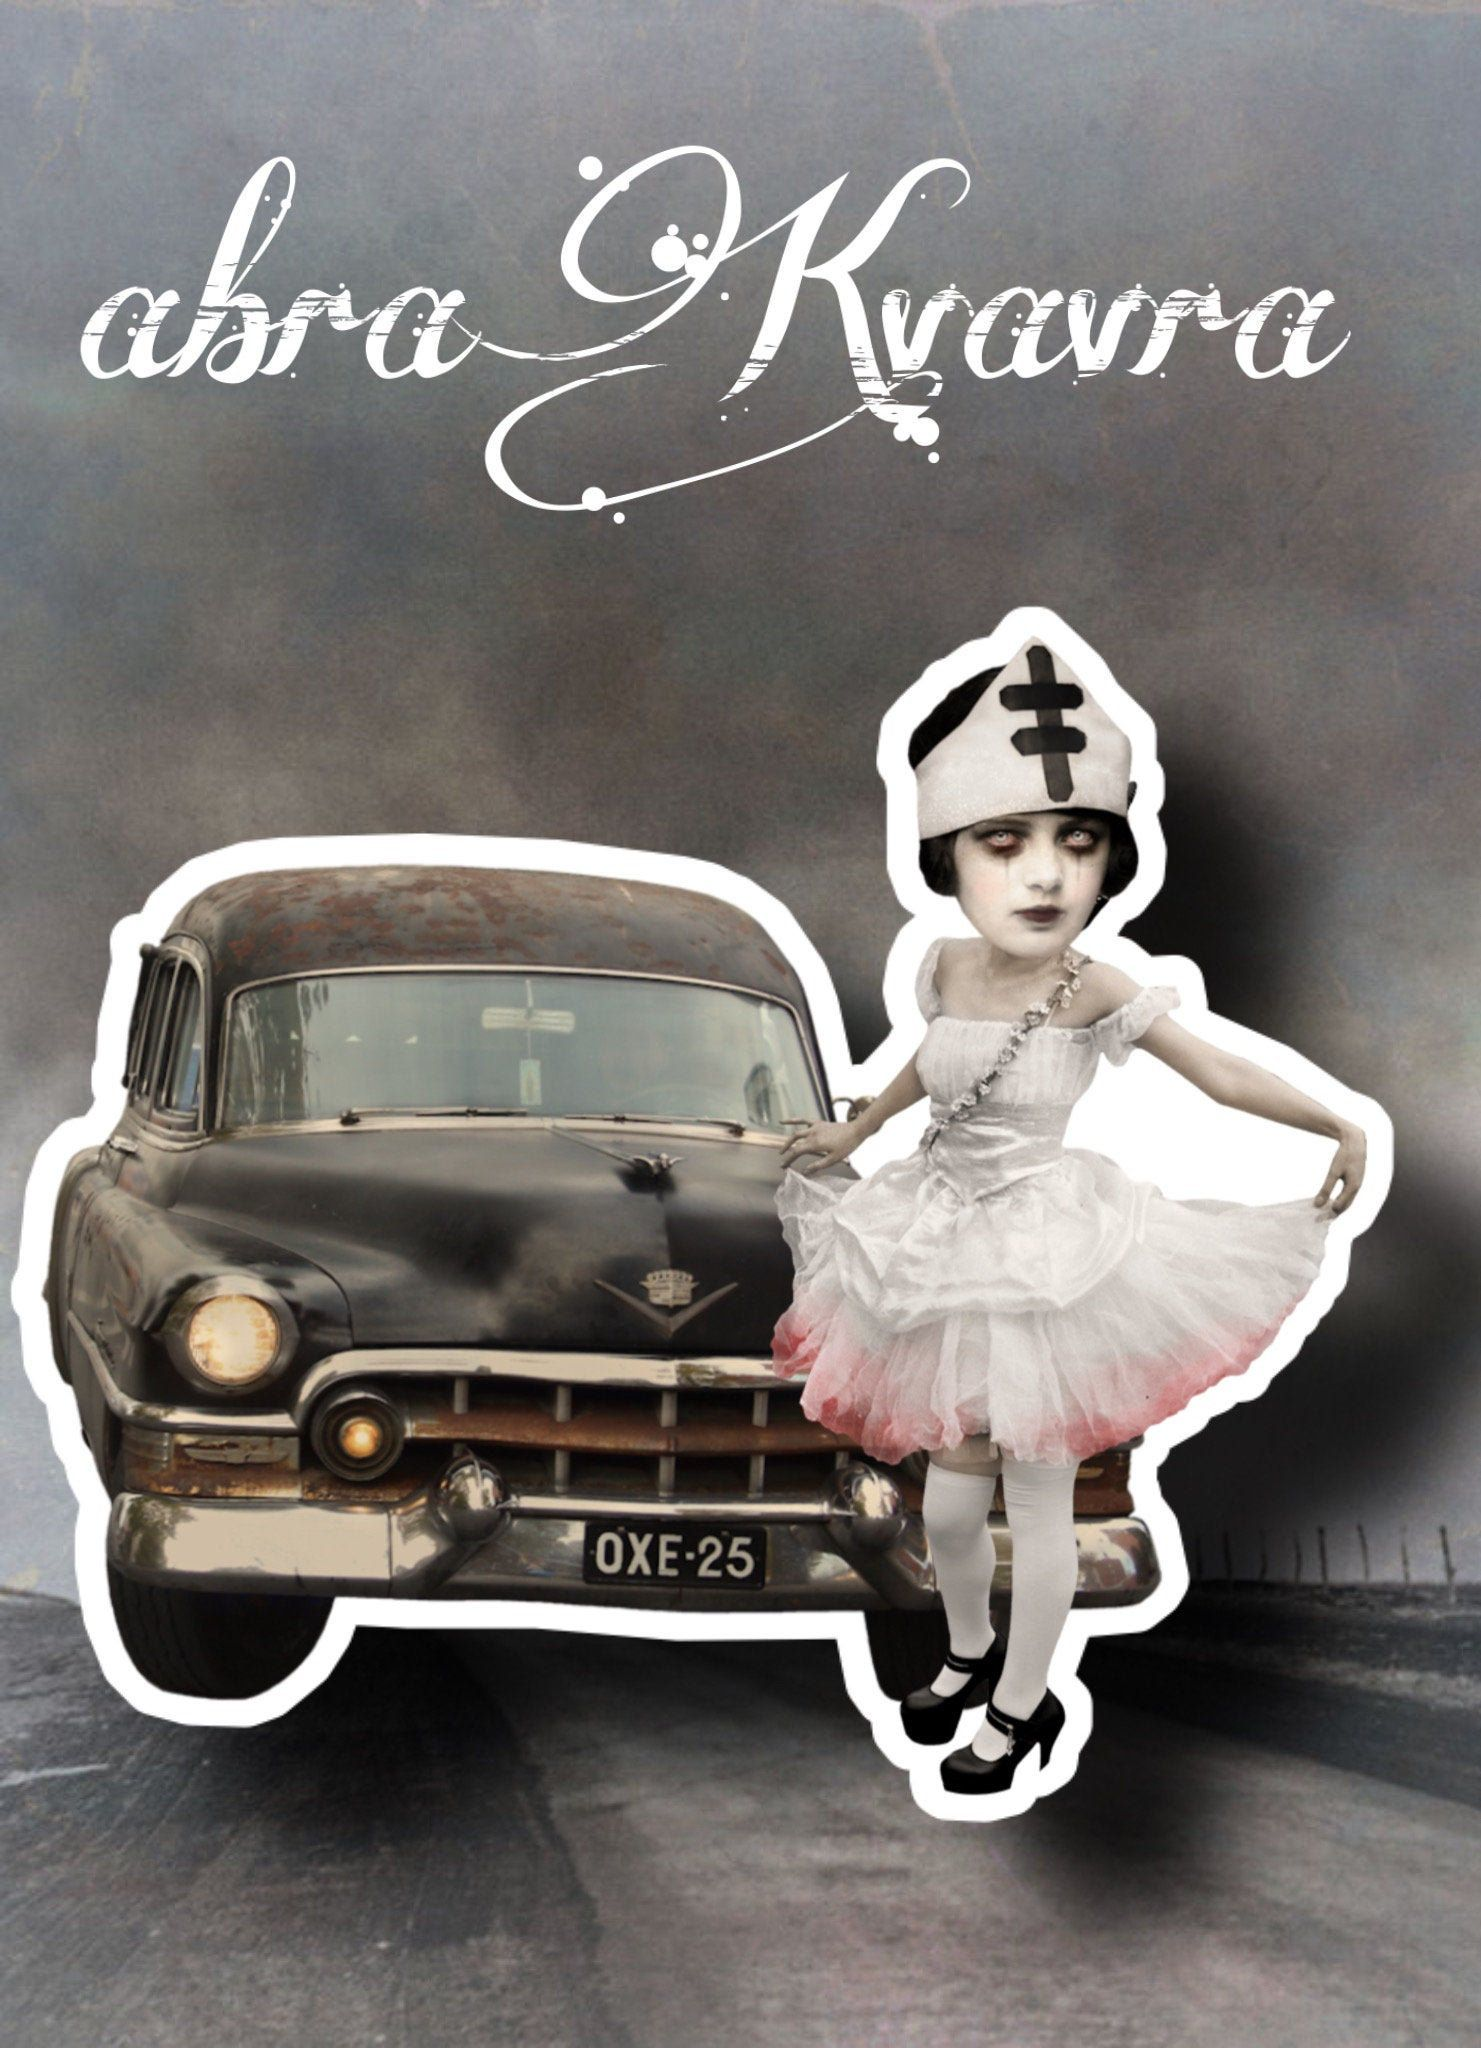 Ghostly Nurse Pinup With Old Car 7 Sticker For Halloween Etsy Sticker Art Glossy Sticker Paper Sticker Paper [ 2048 x 1481 Pixel ]